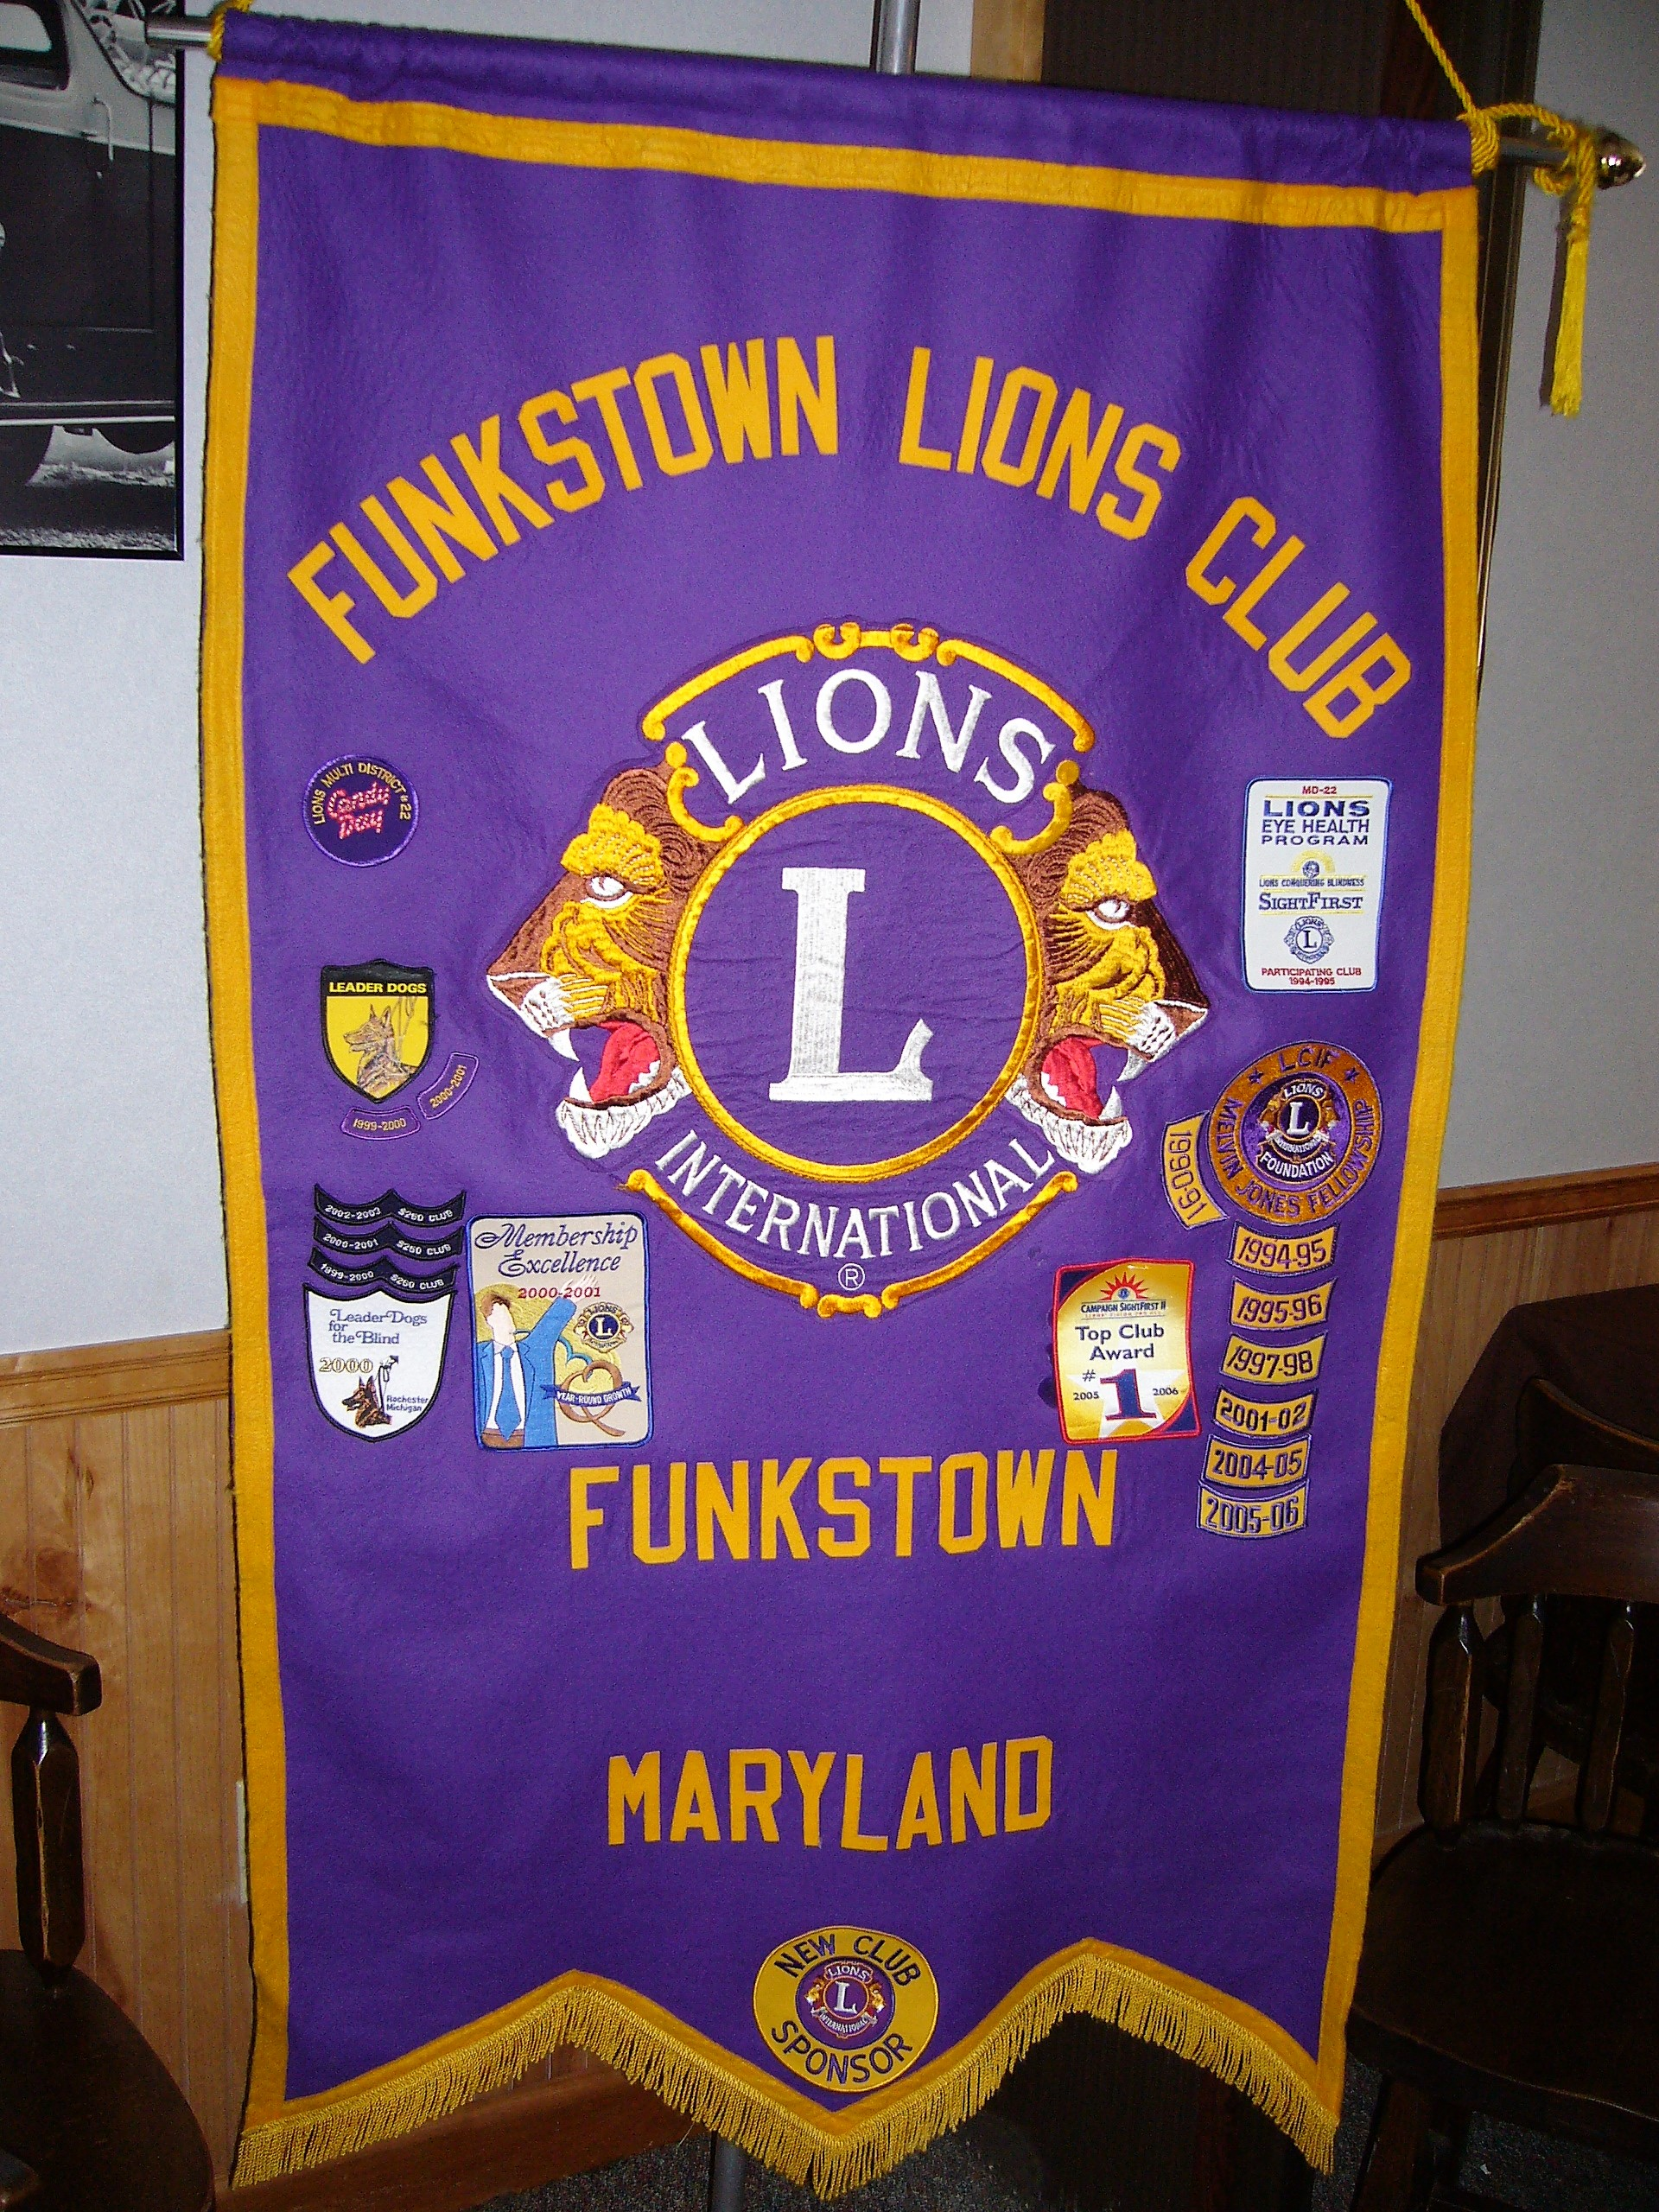 The Banner of the Funkstown Lions Club